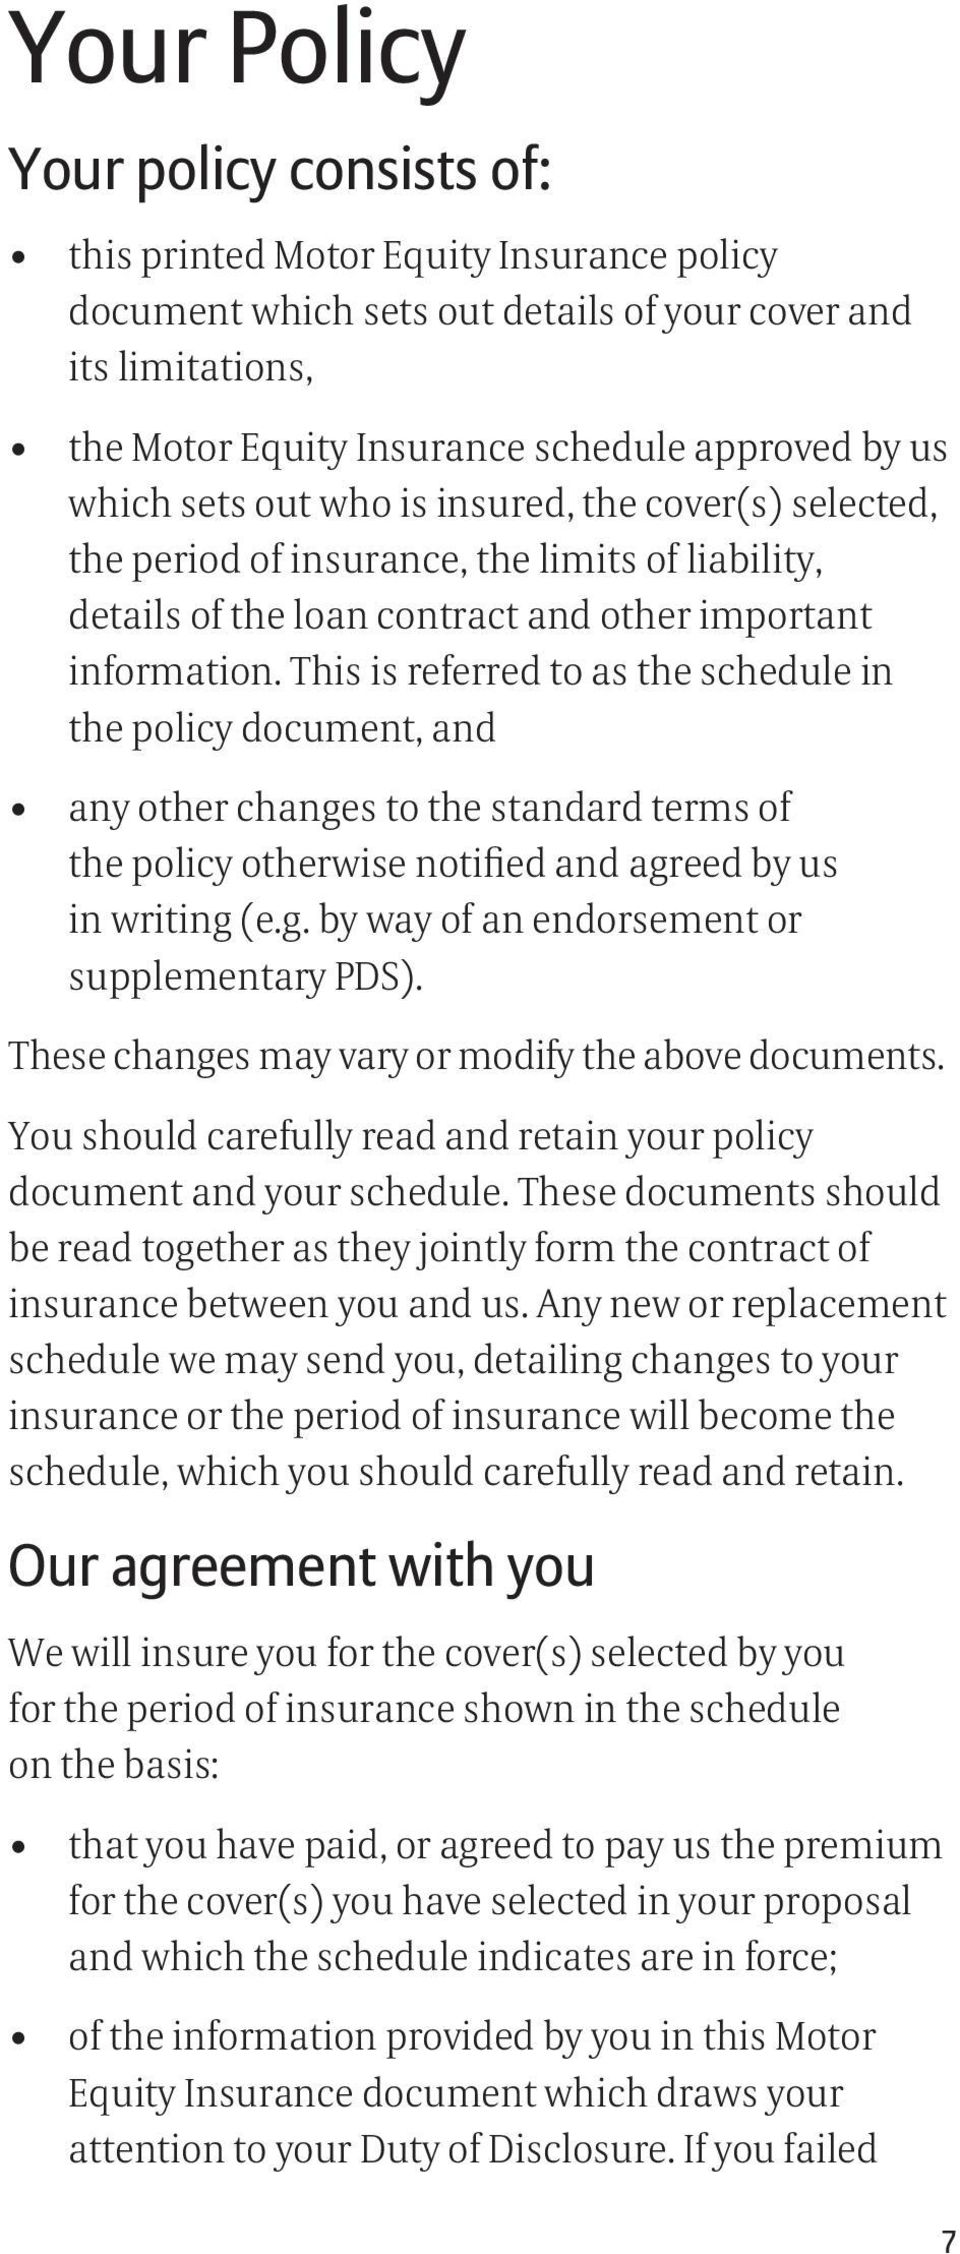 This is referred to as the schedule in the policy document, and any other changes to the standard terms of the policy otherwise notified and agreed by us in writing (e.g. by way of an endorsement or supplementary PDS).